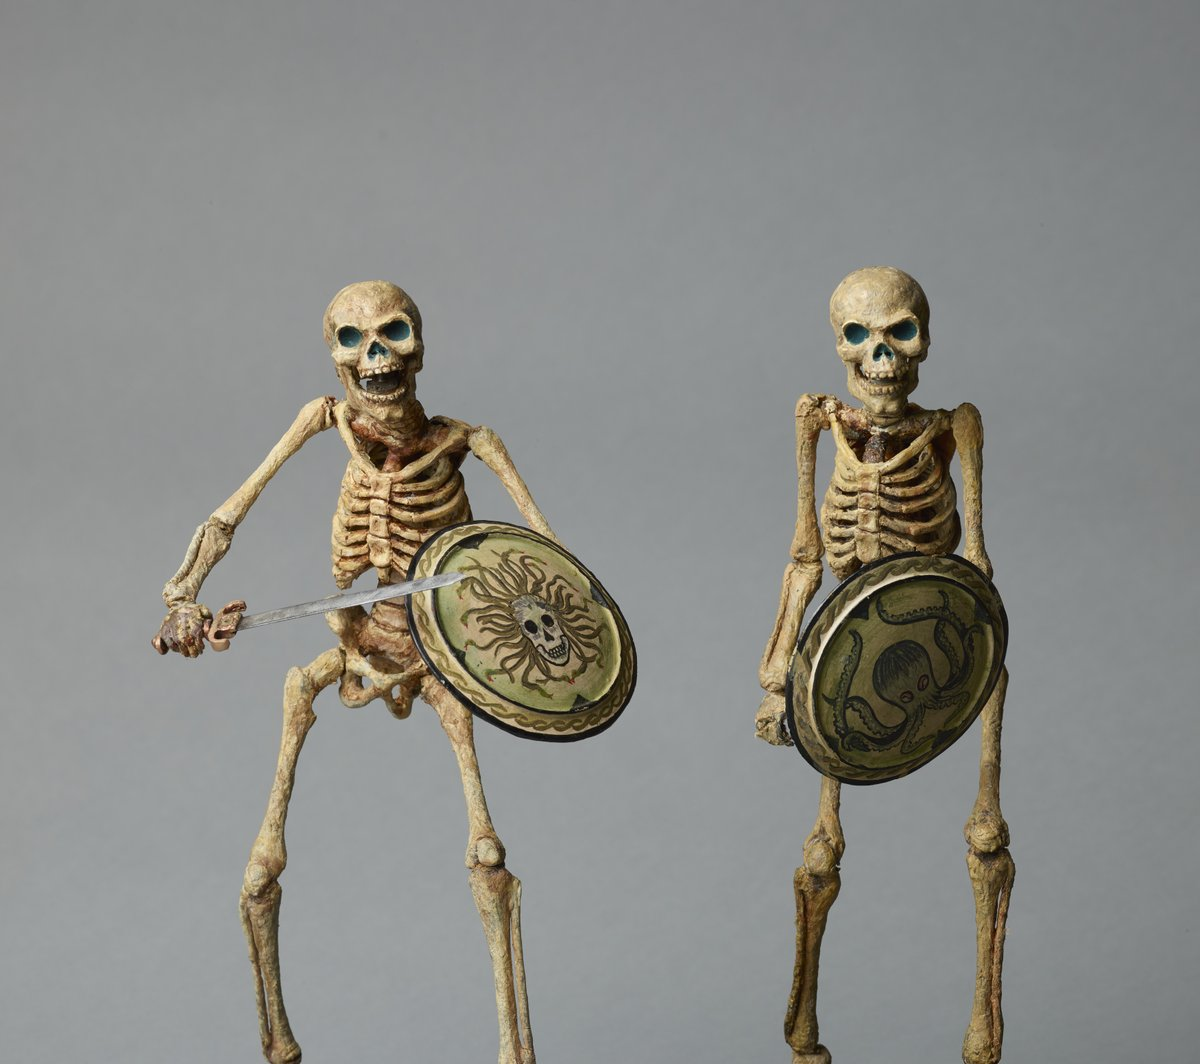 Tickets are on sale now for Ray Harryhausen: Titan of Cinema!🤩   This exhibition will showcase Ray's collection, the man behind some of the most memorable & inspiring visual effects in the history of cinema.  Explore 👇  https://t.co/RDRQsymp0V  #ThisisEdinburgh#ForeverEdinburgh https://t.co/OJLp1m5JlA